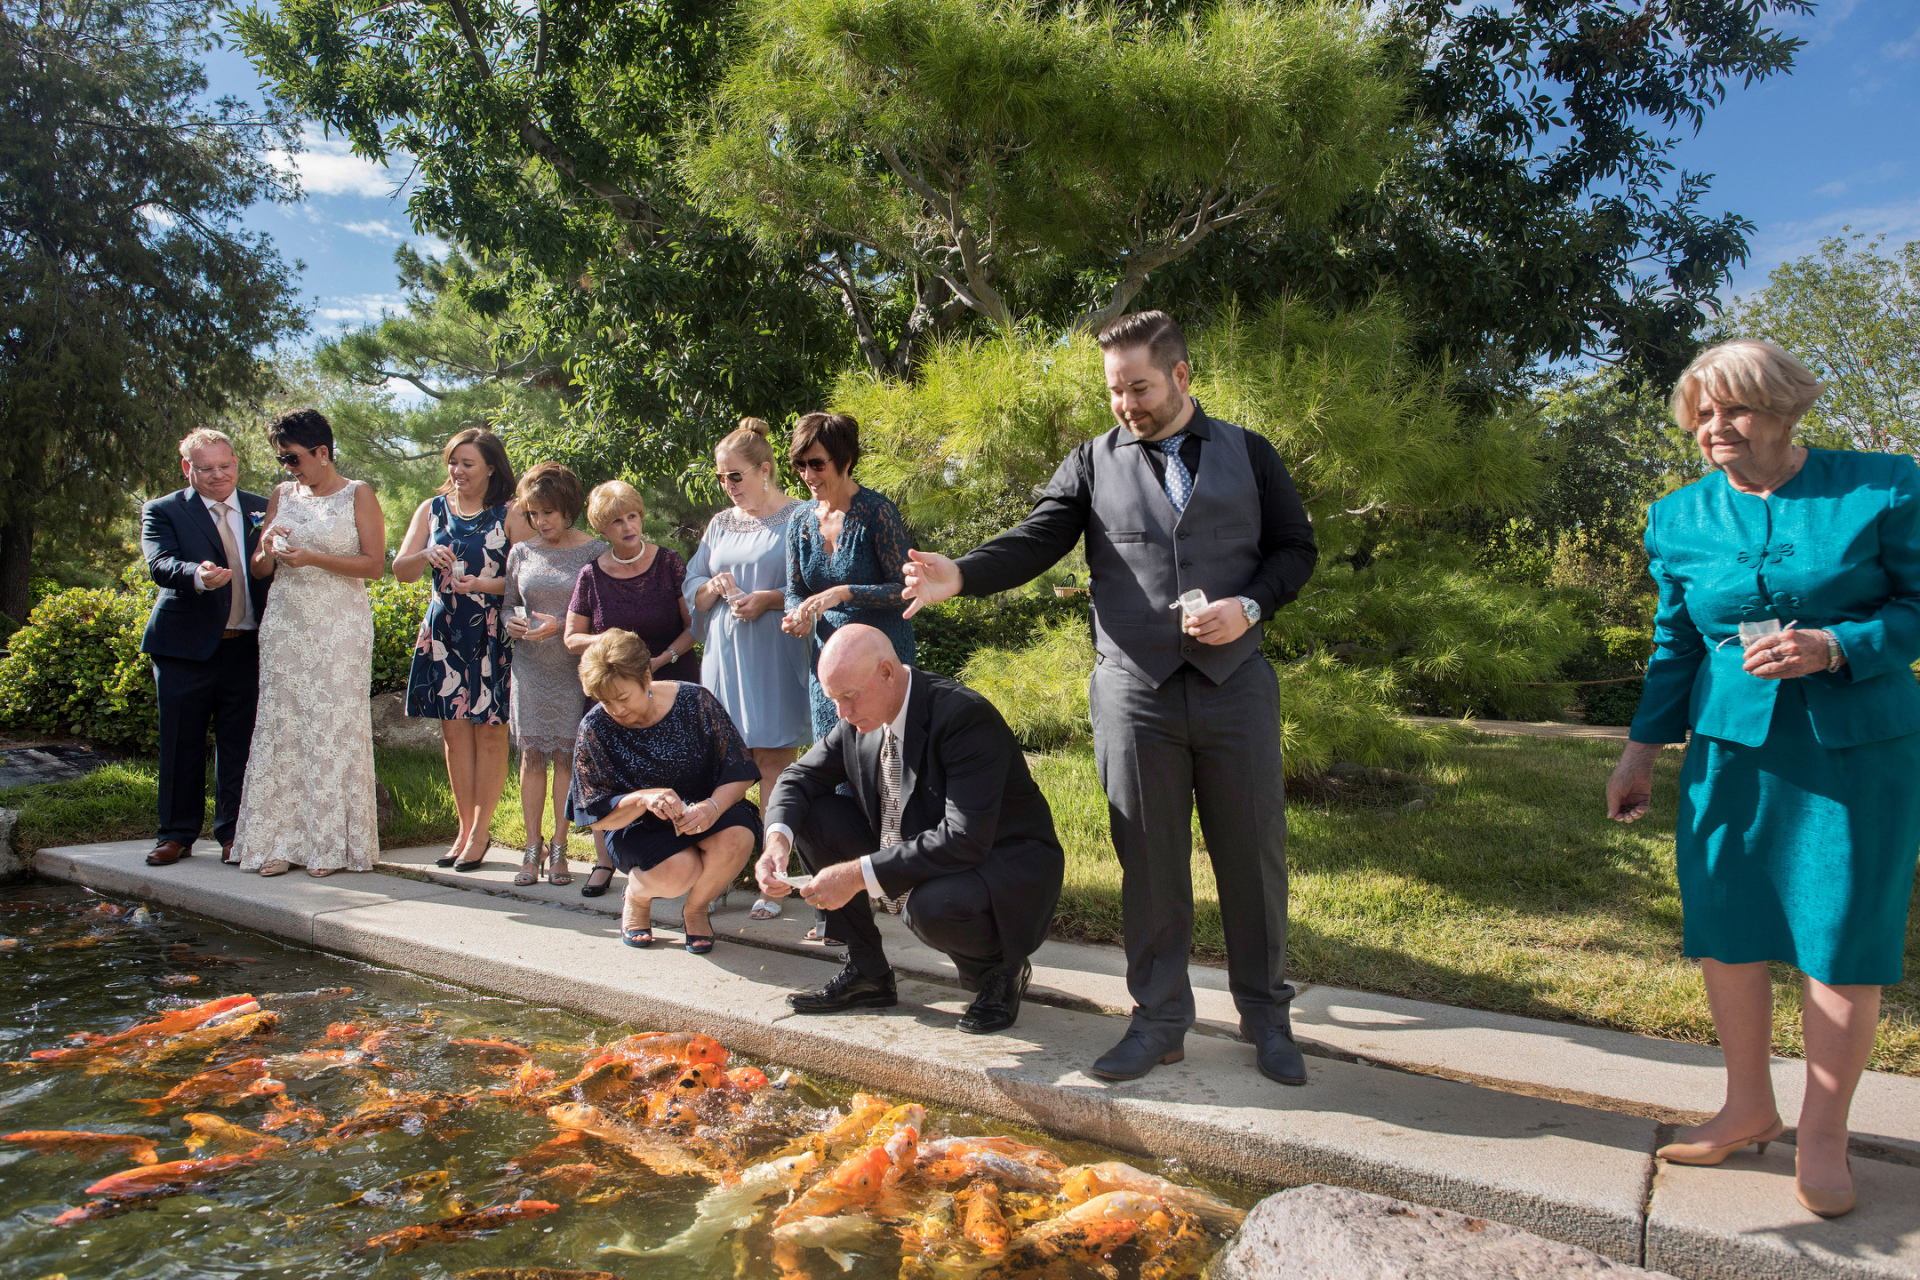 AZ Japanese Friendship Garden Elopement - Wedding Photography | The bride, groom, and their guests feed a frenzy of large koi fish for good luck at the koi pond in the garden